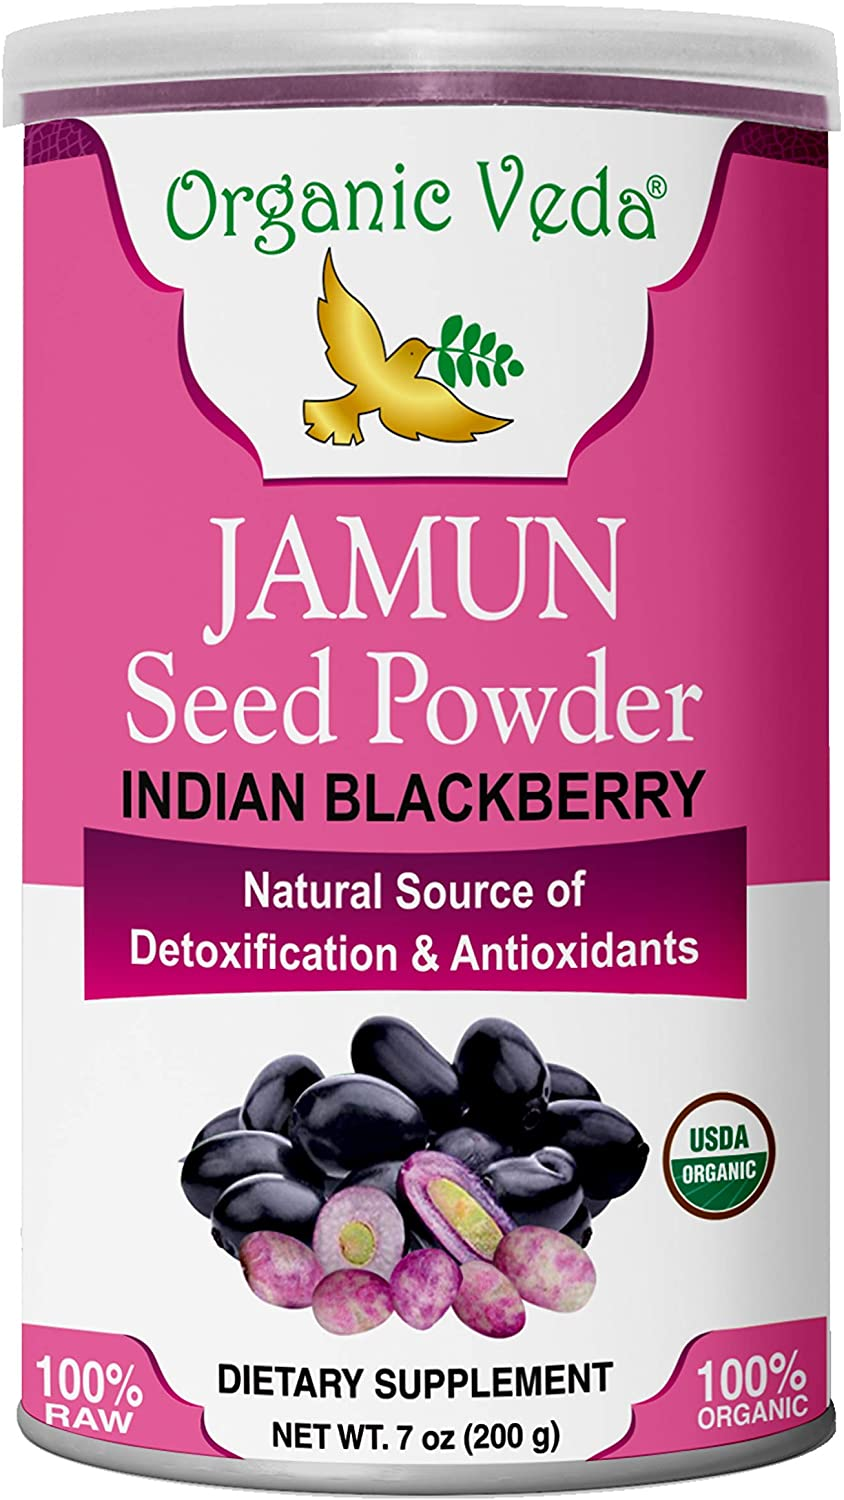 Organic Veda® Jamun Seed Powder 7 Oz (200 Grams) - Organic, Pure and All Natural Herbs Raw Organic Super Food Supplement. Non GMO. Gluten Free. Made in Health USA FDA Registered Facility.